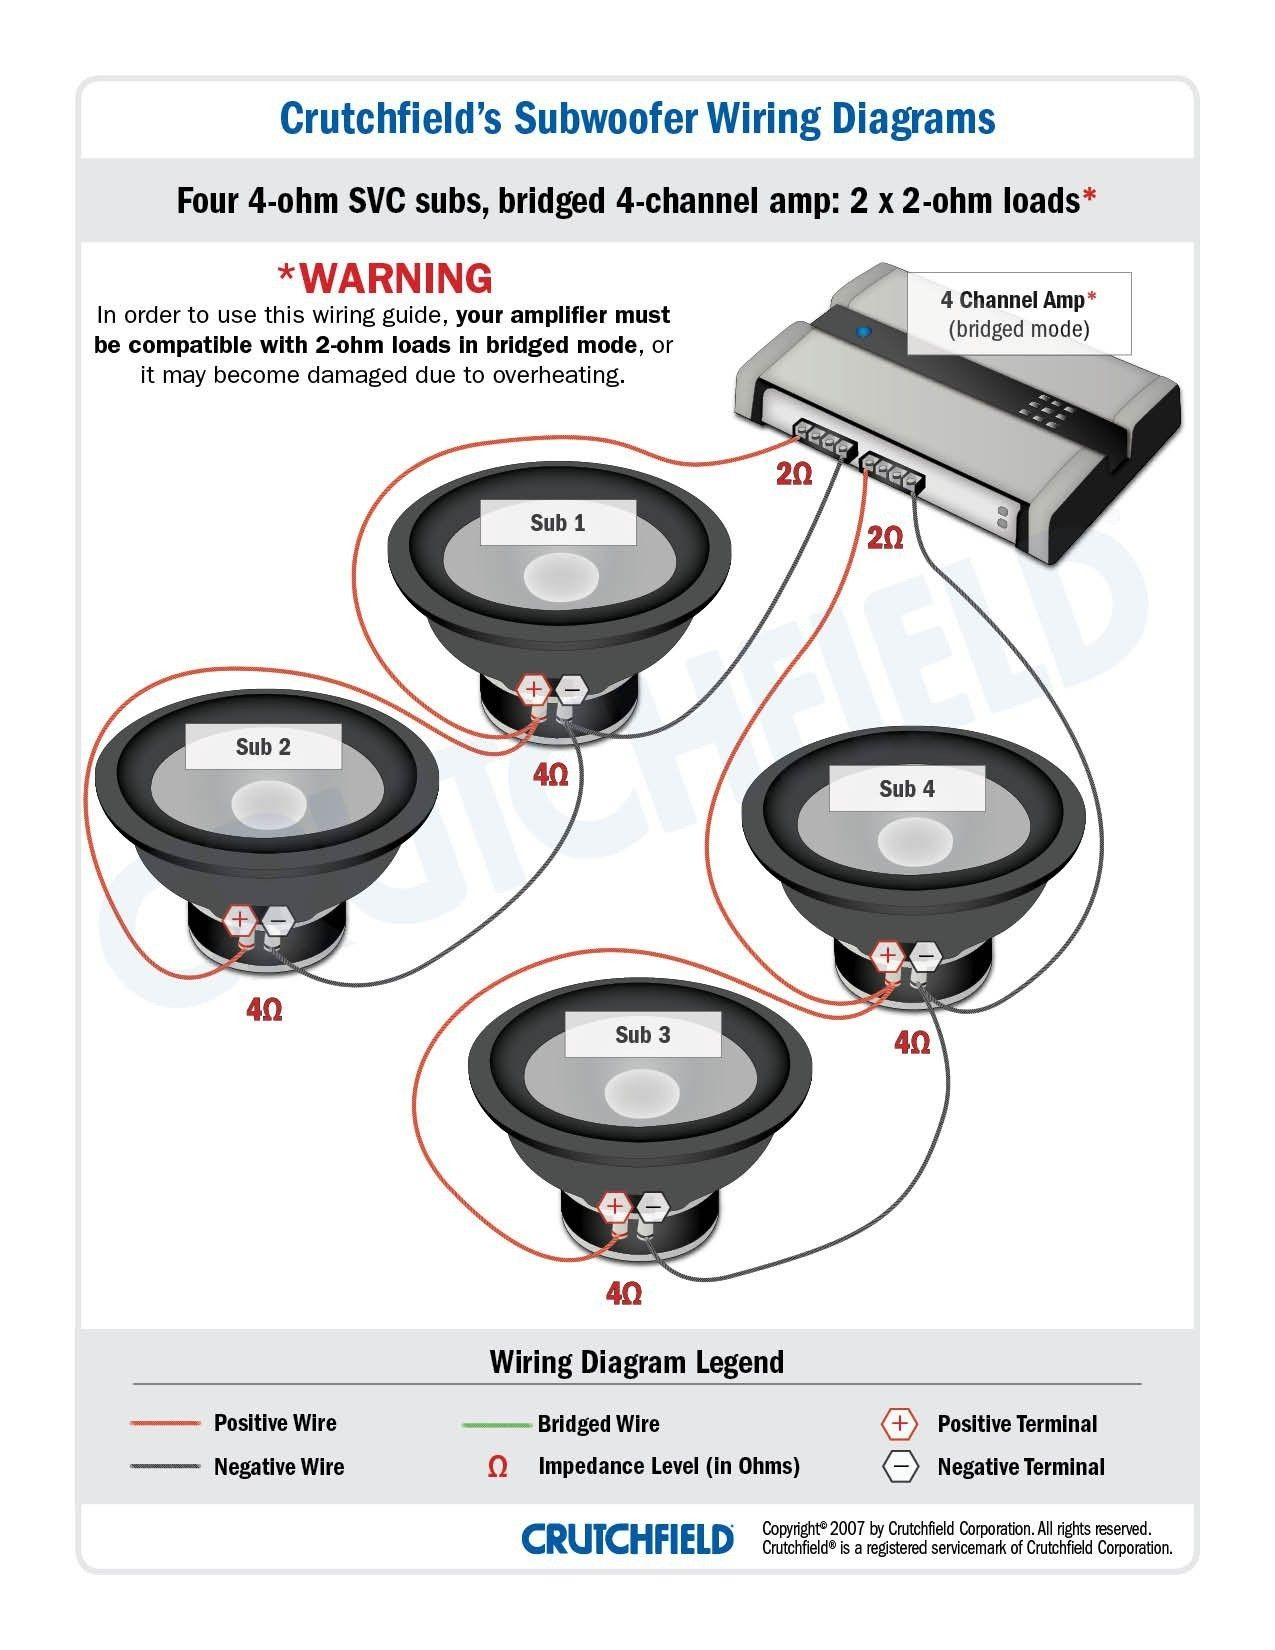 New Wiring Diagram For Car Stereo Subwoofer Subwoofer Wiring Subwoofer Car Stereo